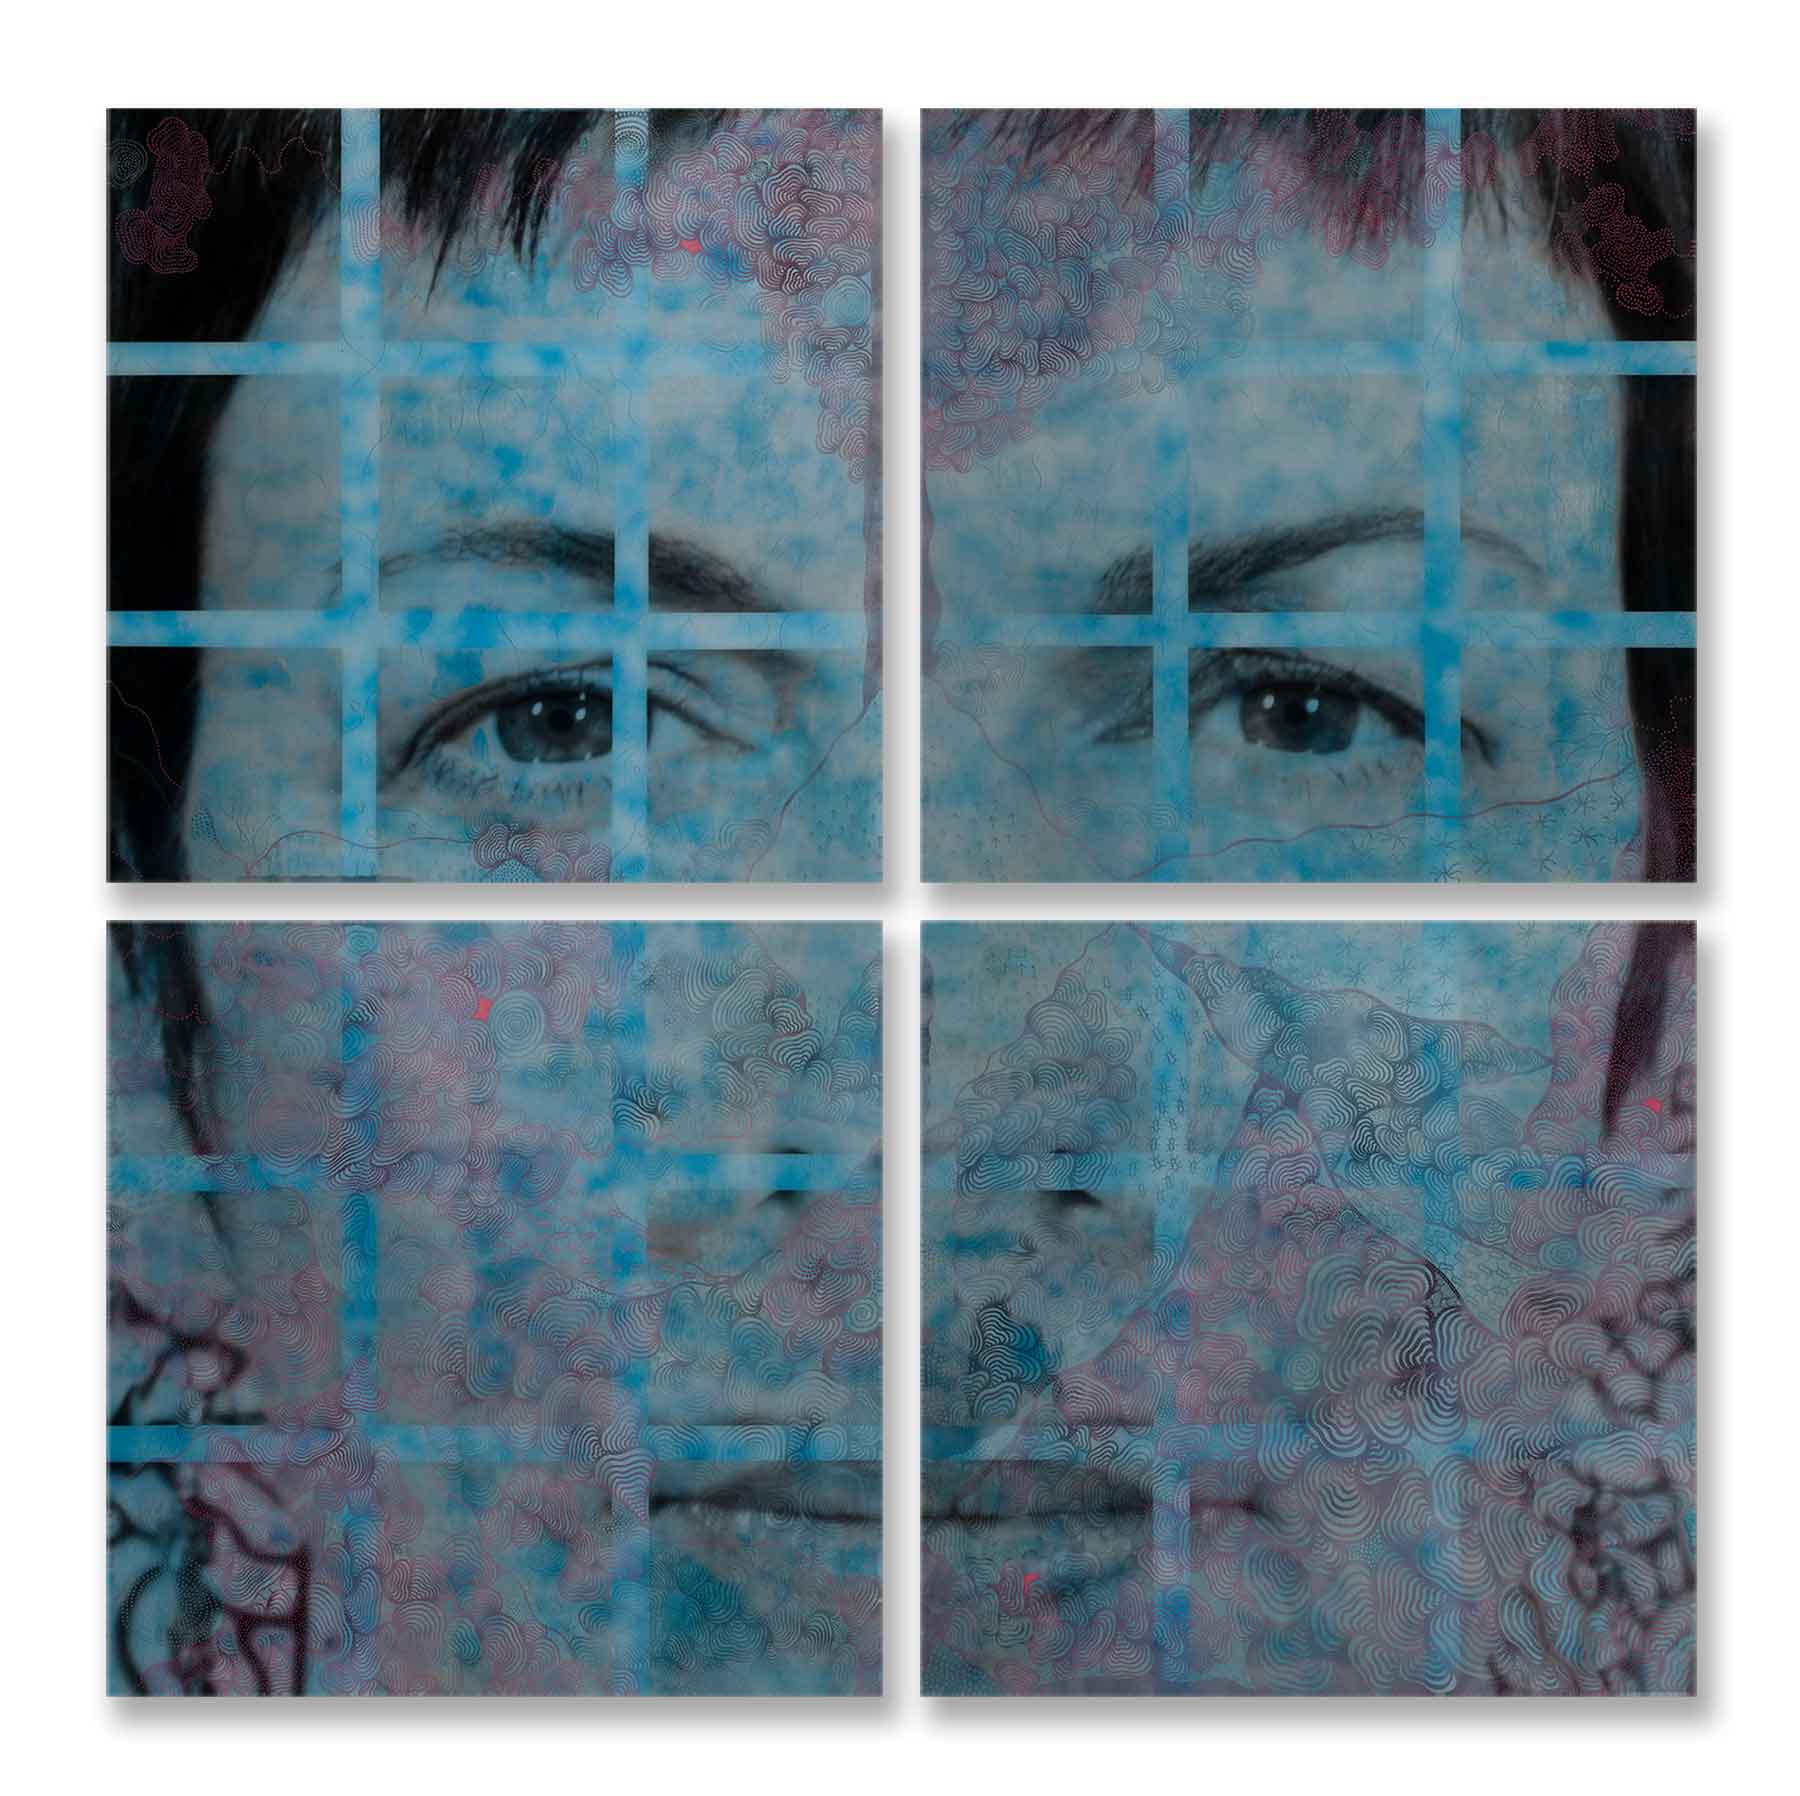 "Luisa Mesa, Trapped In Thought, 2010, digital image, enamel, acrylic, resin on wood, 84"" x 84"" x 4.""  All images are courtesy of the artist."